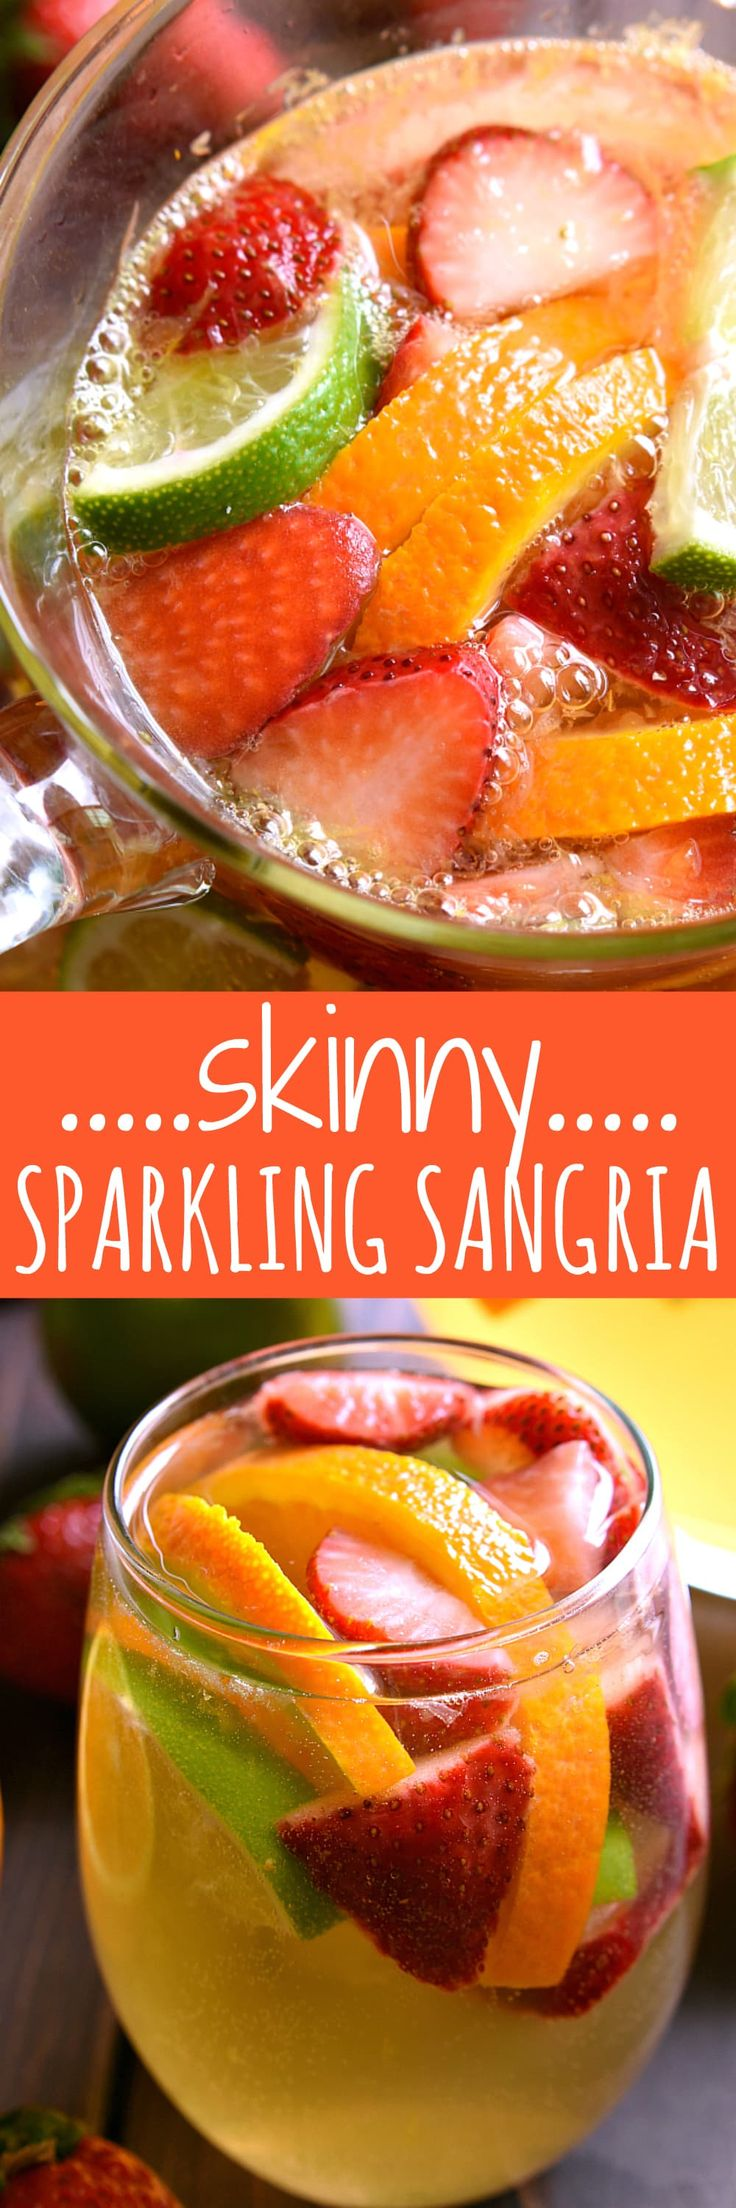 This Skinny Sparkling Sangria is the ULTIMATE summer cocktail! Loaded with fruit and packed with flavor, this sparkling sangria is sweet, refreshing, and perfect for summer! #zingonthego #ad @zingstevia